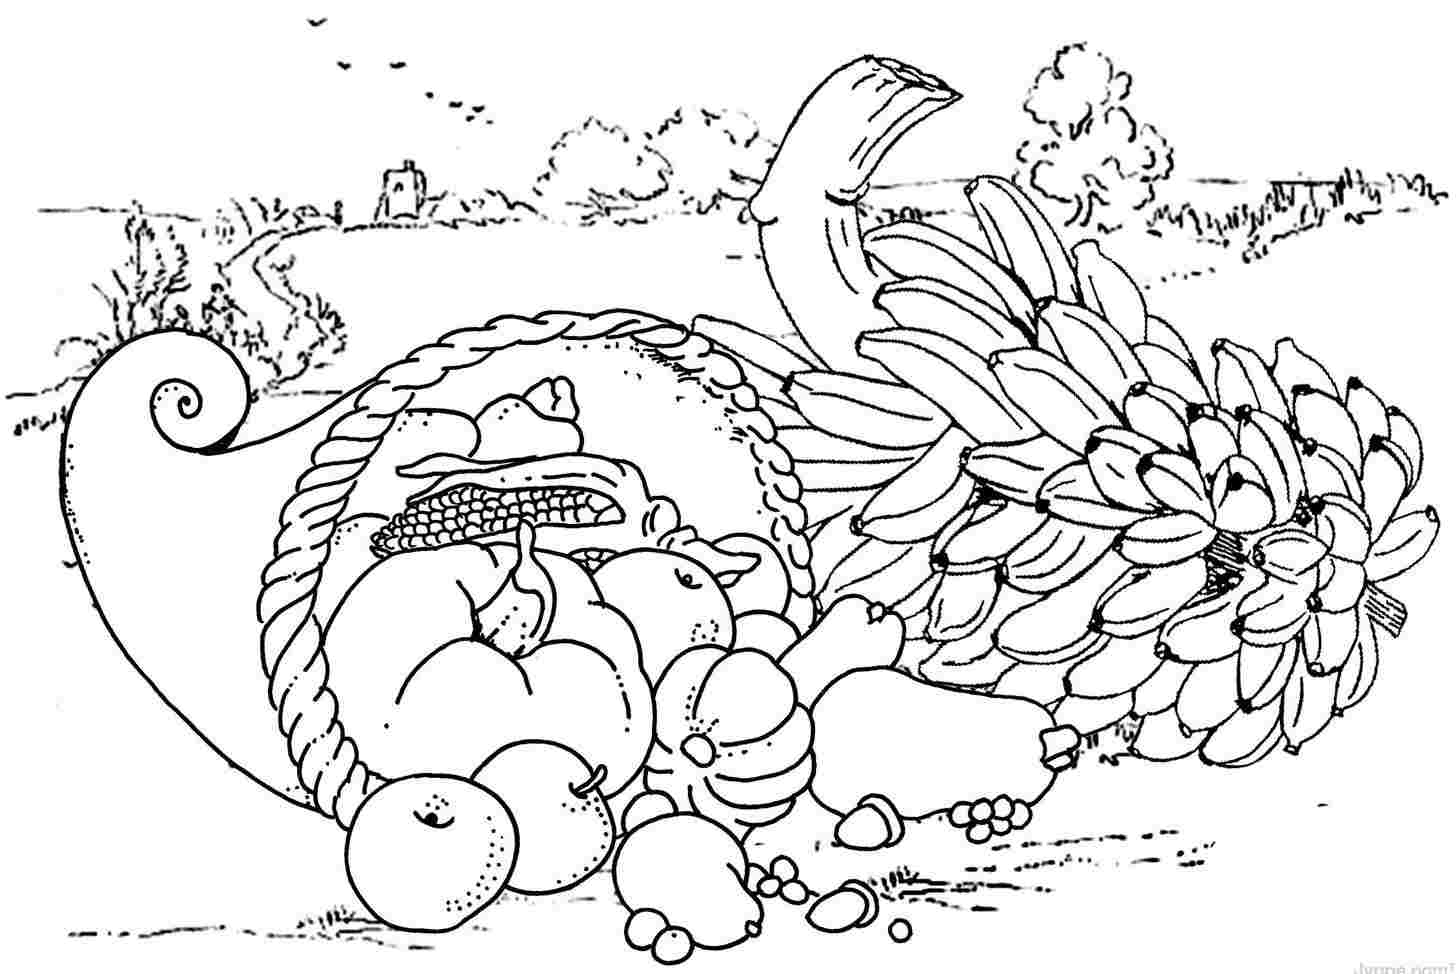 Thanksgiving Charlie Brown Coloring Pages - Coloring Home | 974x1456